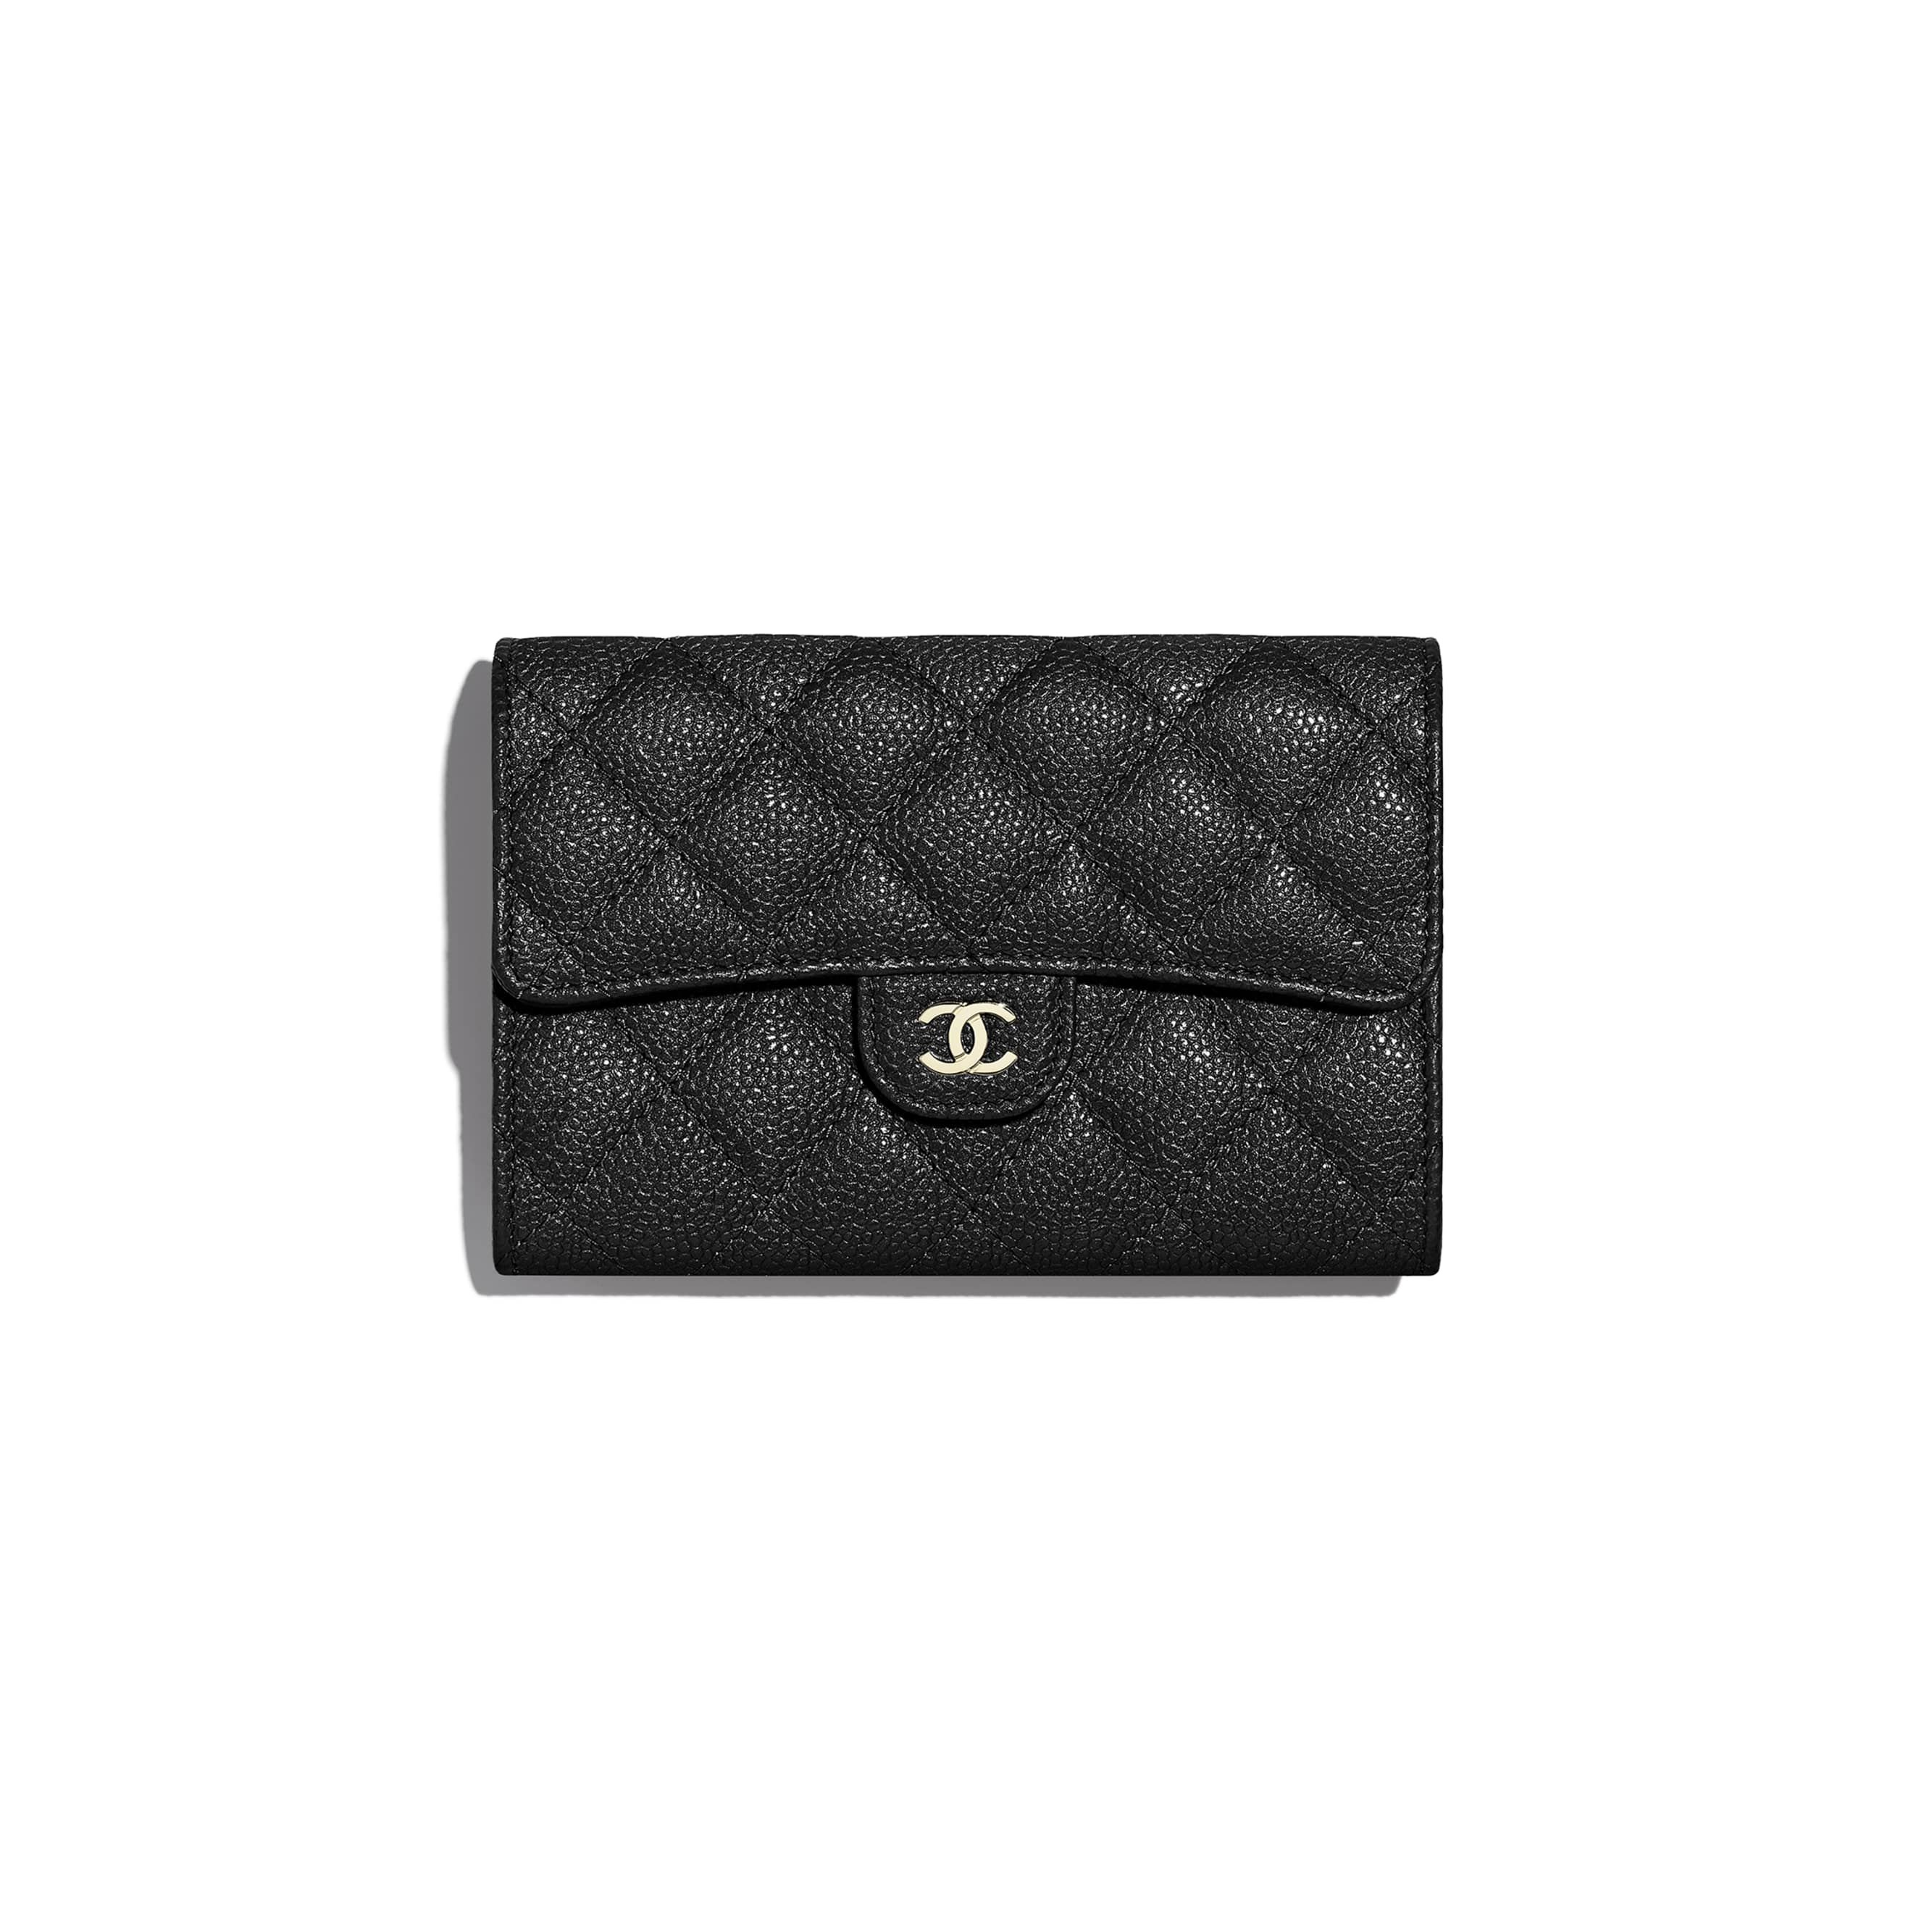 35d40c3380f179 Grained Calfskin & Gold-Tone Metal Classic Small Flap Wallet | CHANEL